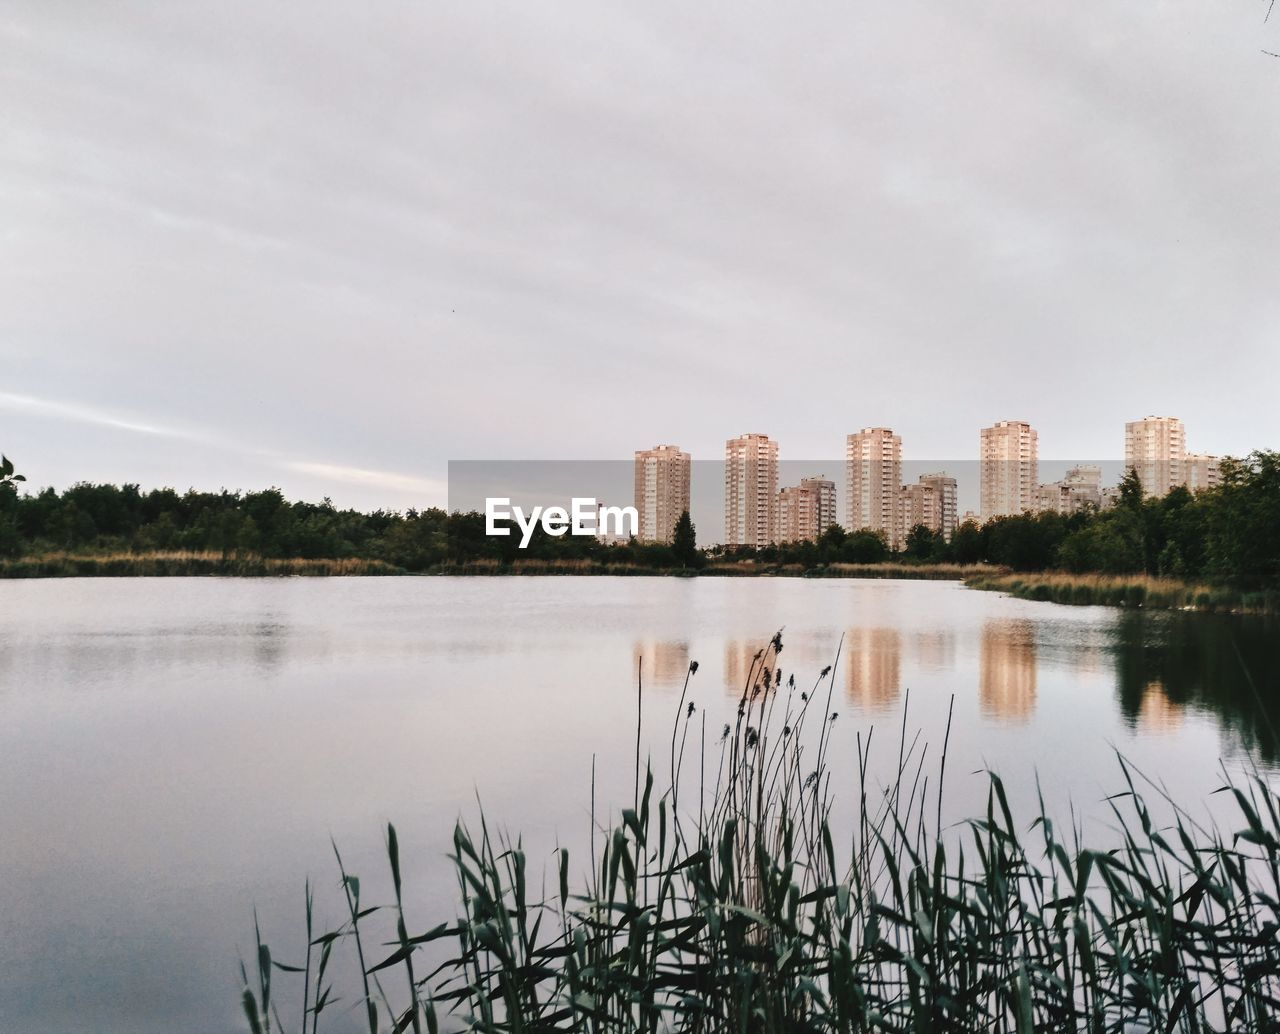 water, reflection, sky, architecture, built structure, plant, building exterior, lake, nature, waterfront, no people, city, tree, day, cloud - sky, building, growth, urban skyline, outdoors, office building exterior, skyscraper